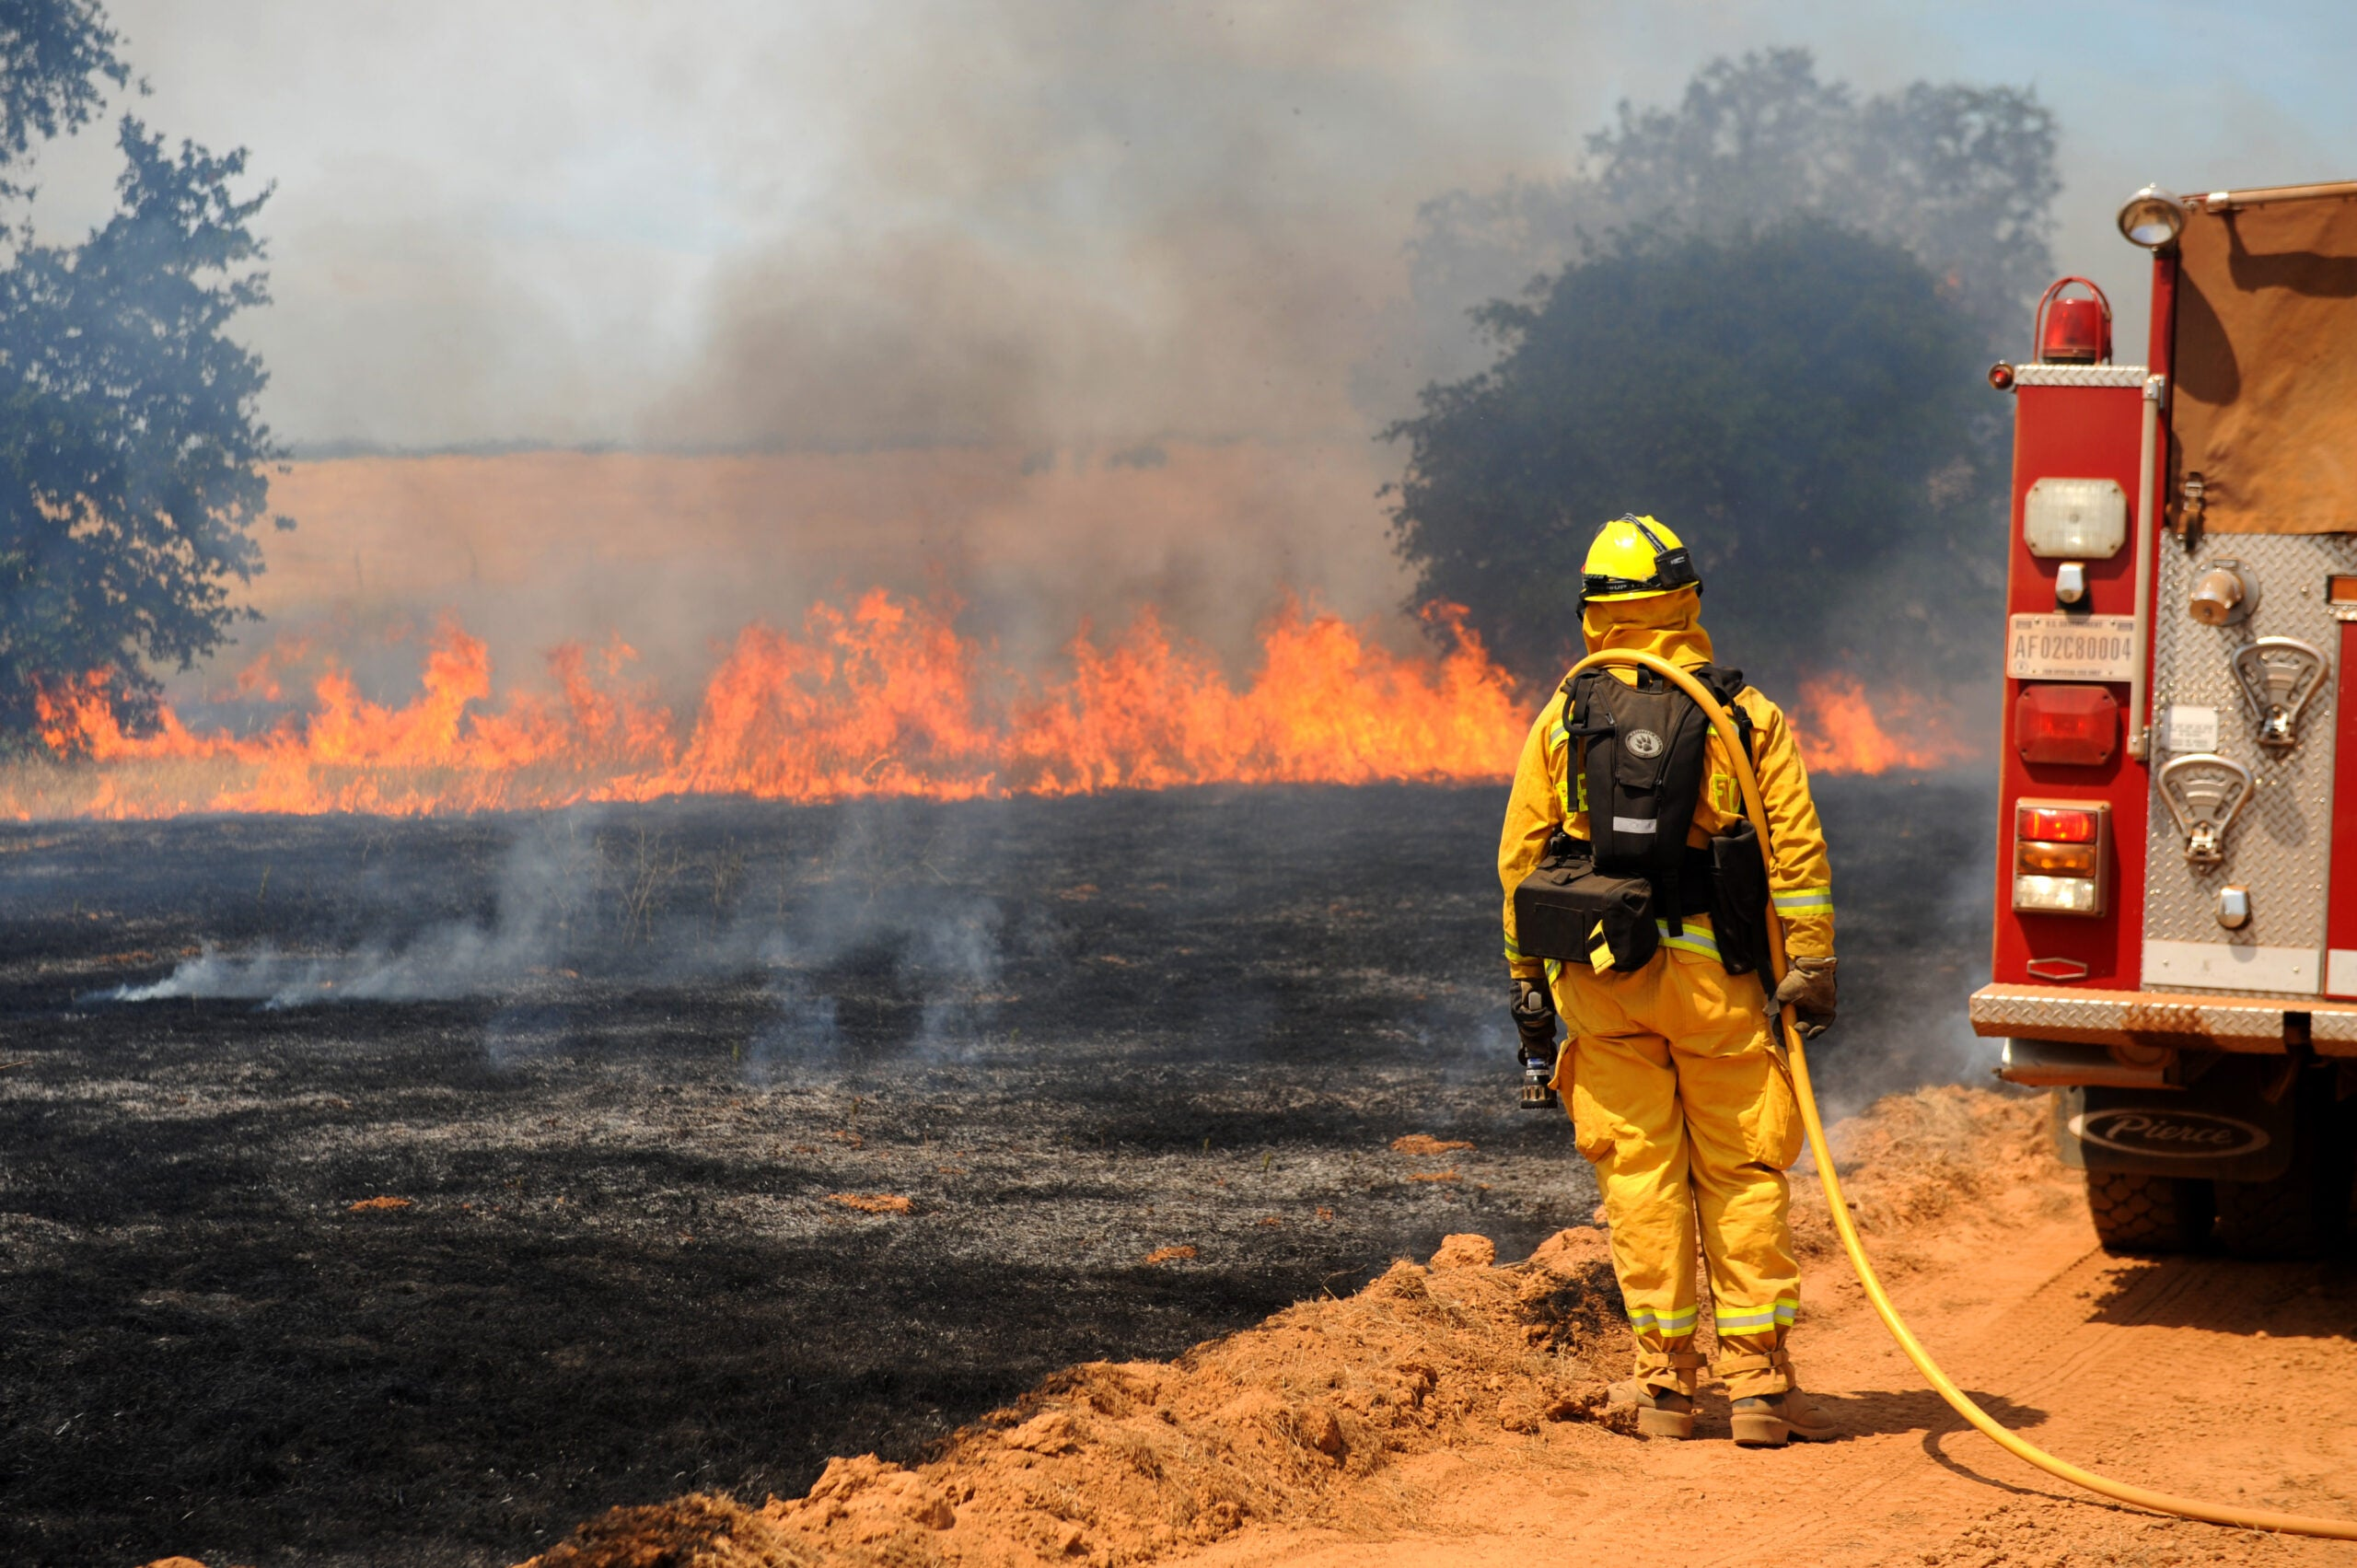 firefighter looks out over burned land and fire